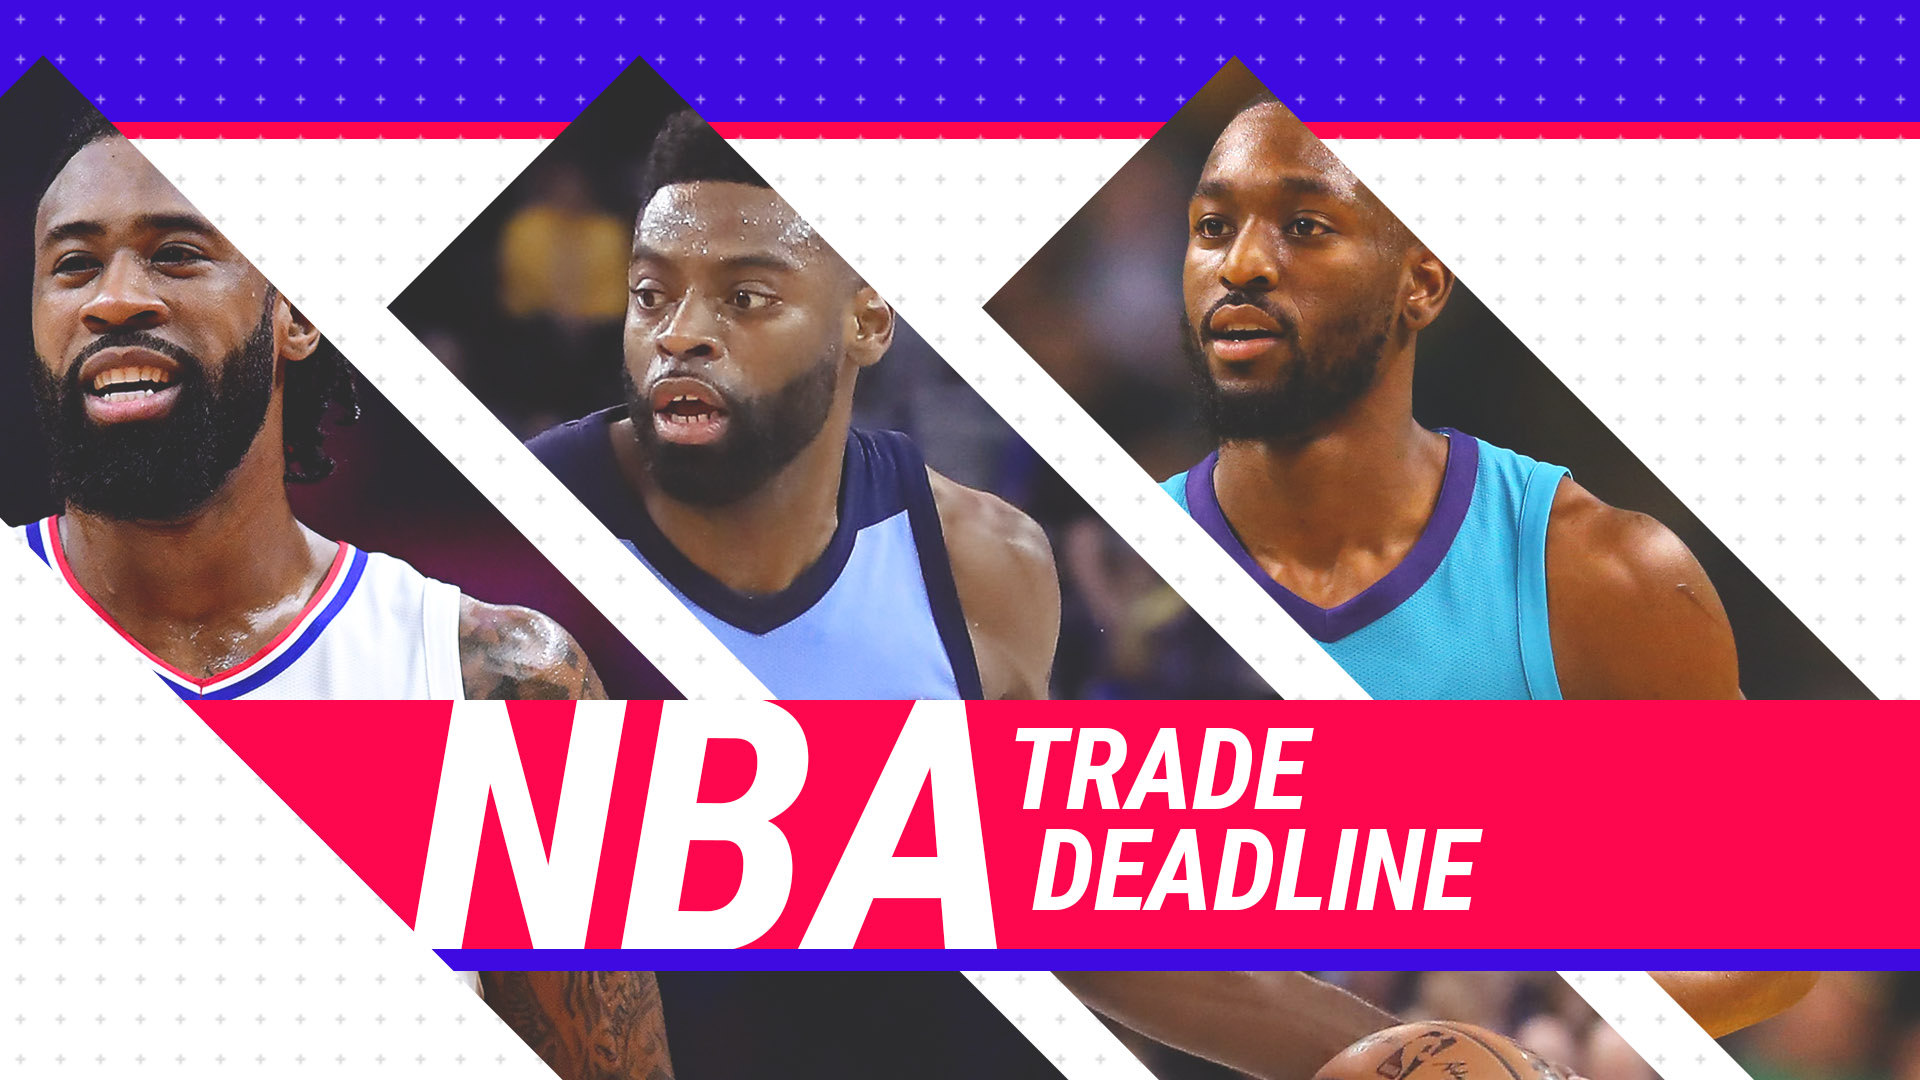 ... nba-trade-deadline-jordan-evans-walker-ftr-020618.